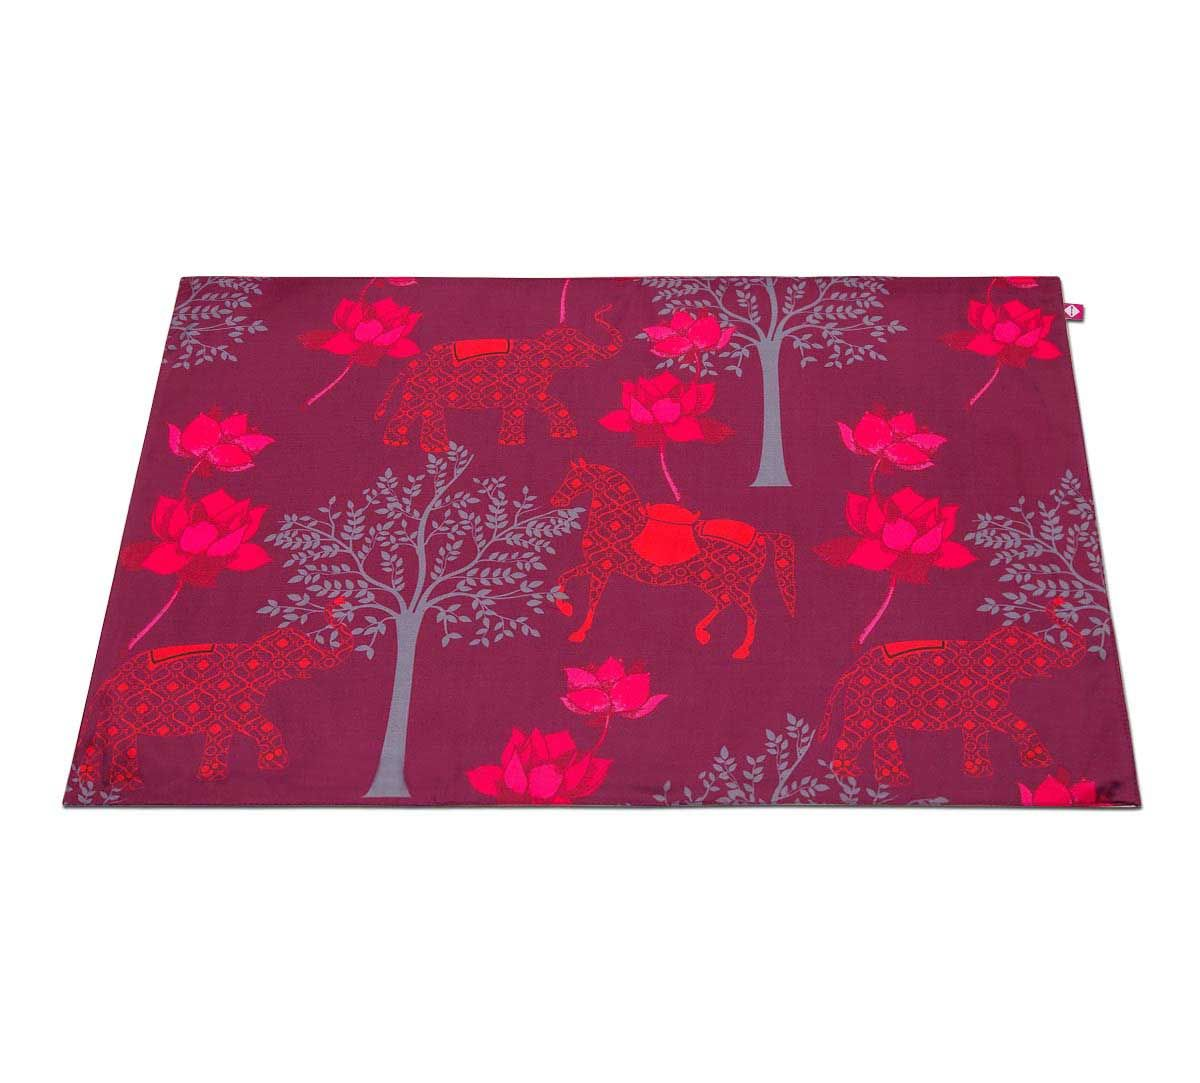 Hackney Inversion Table Mats